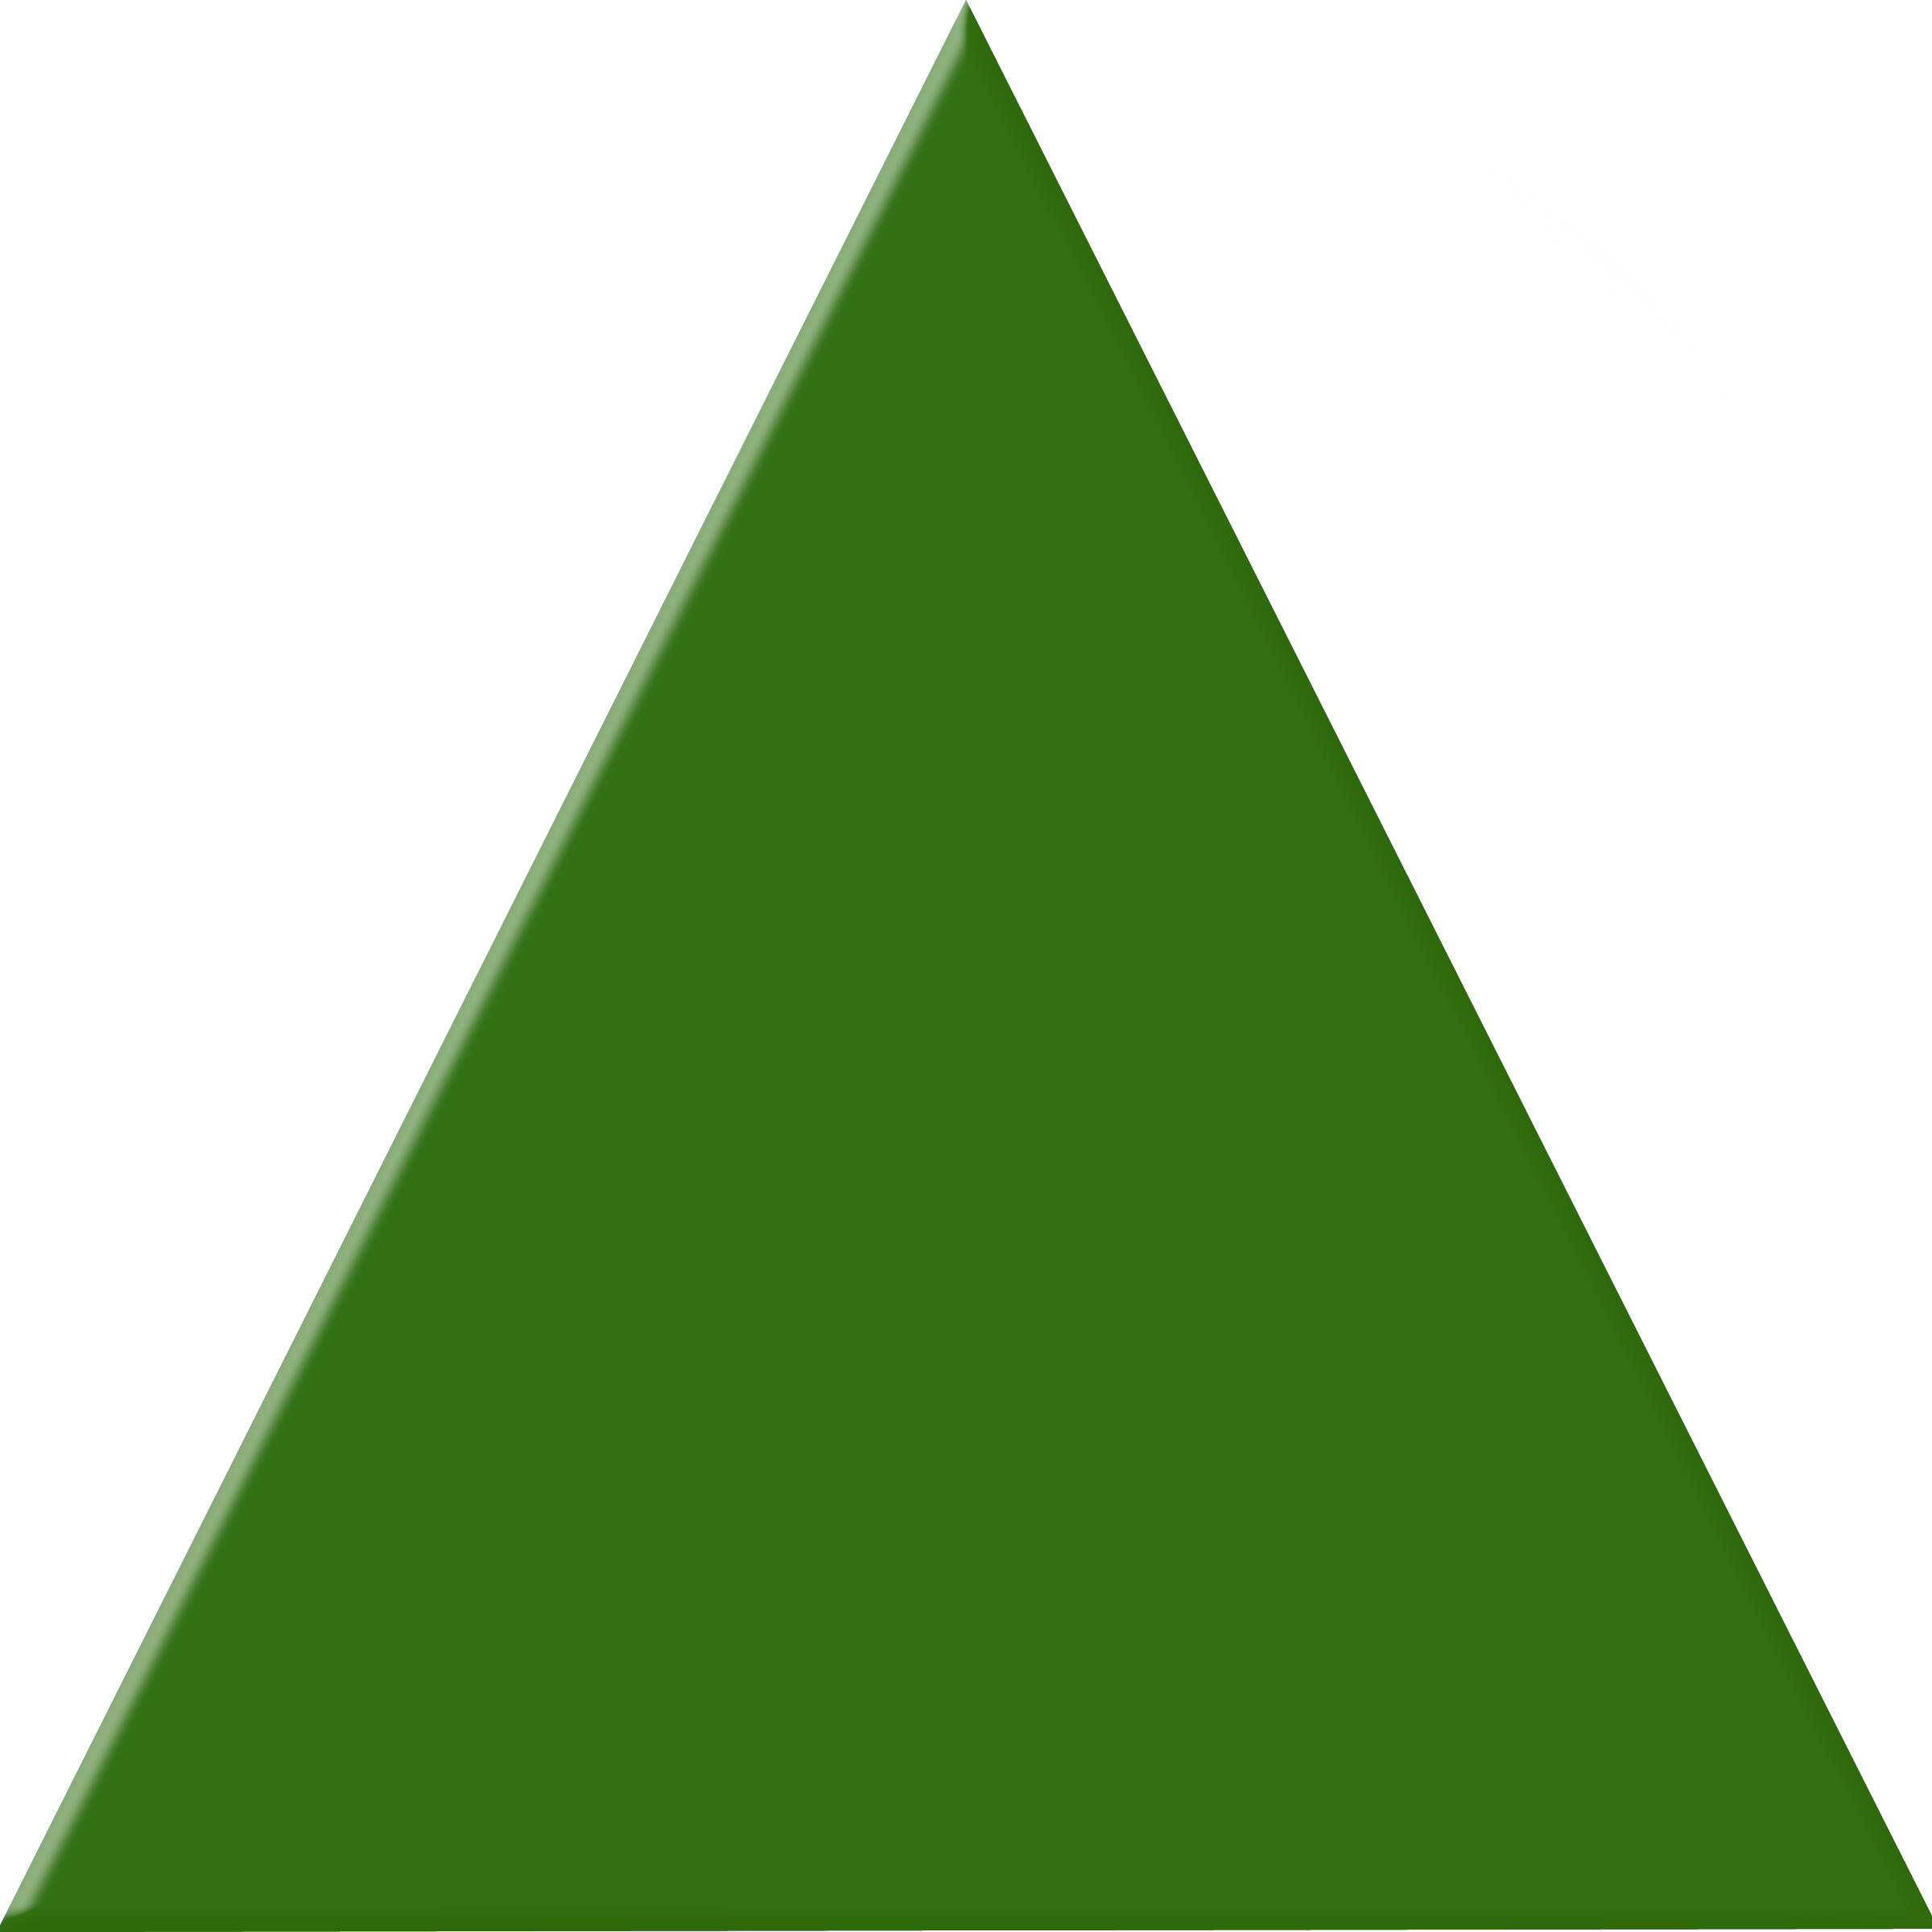 Green Triangle.